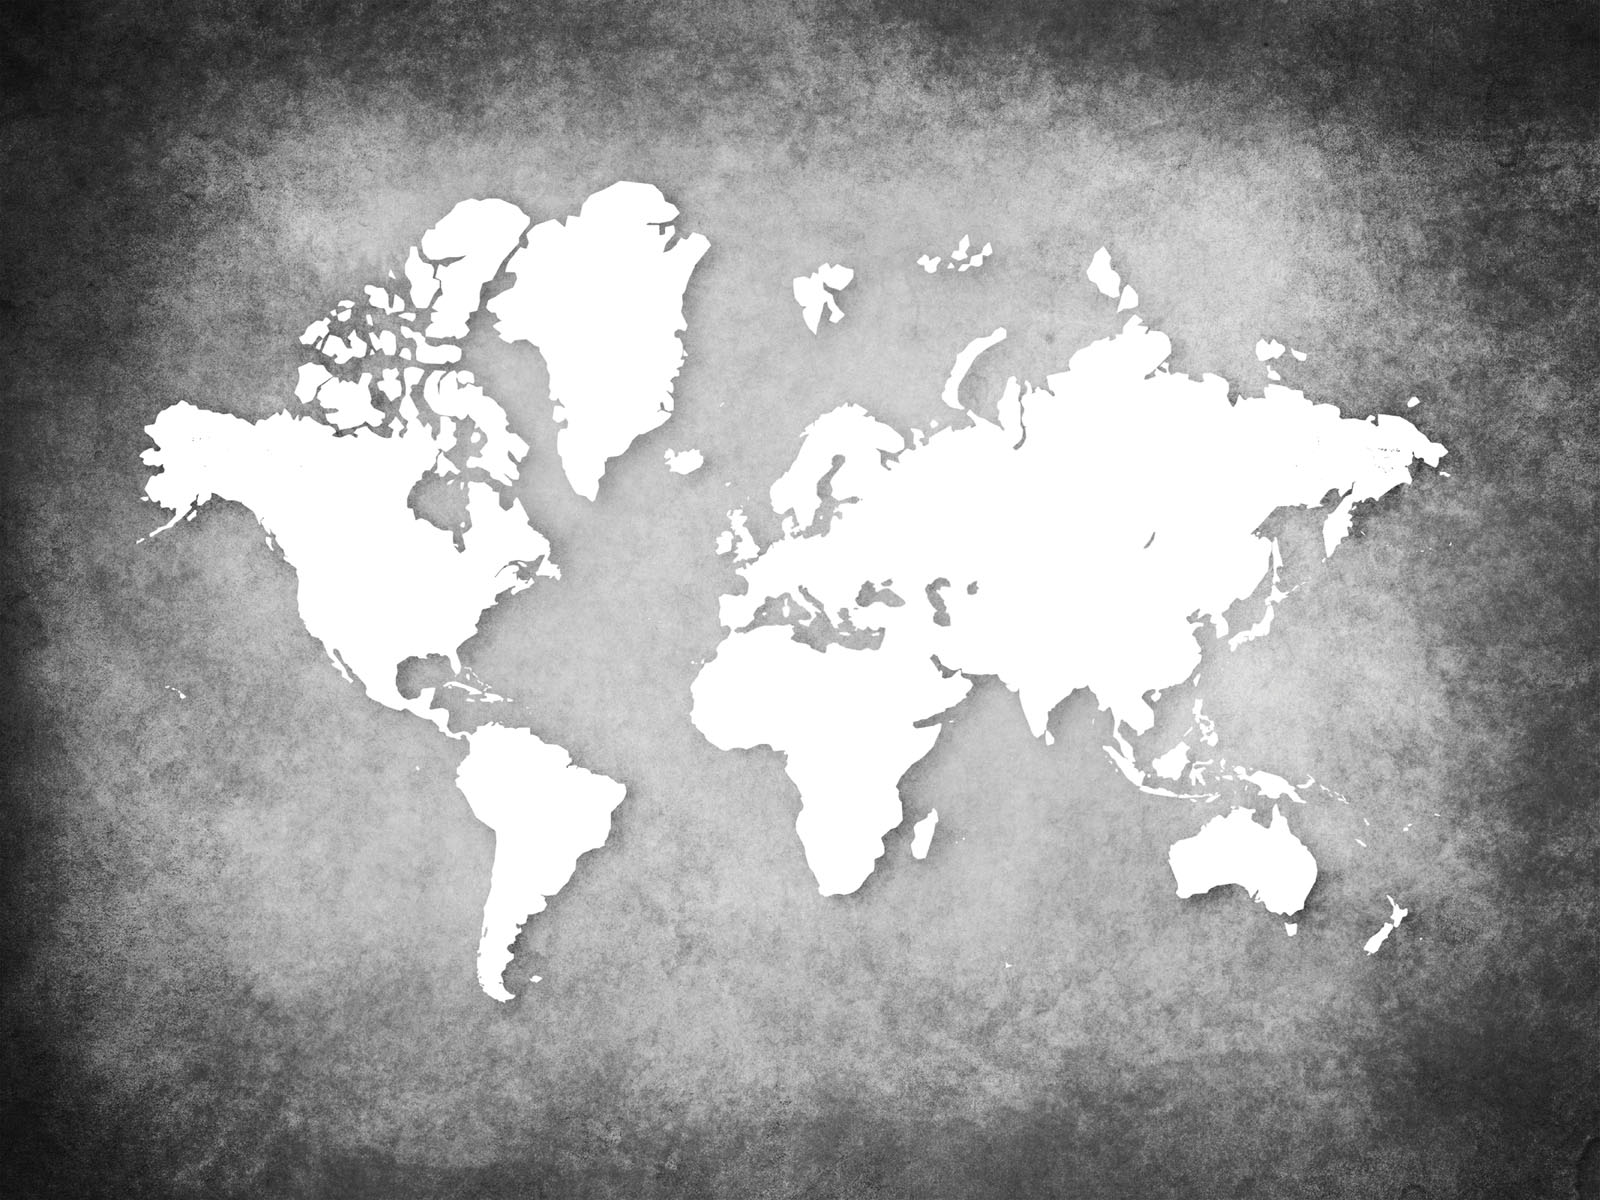 World map on wall backgrounds business design educational world map on wall ppt clipart gumiabroncs Gallery